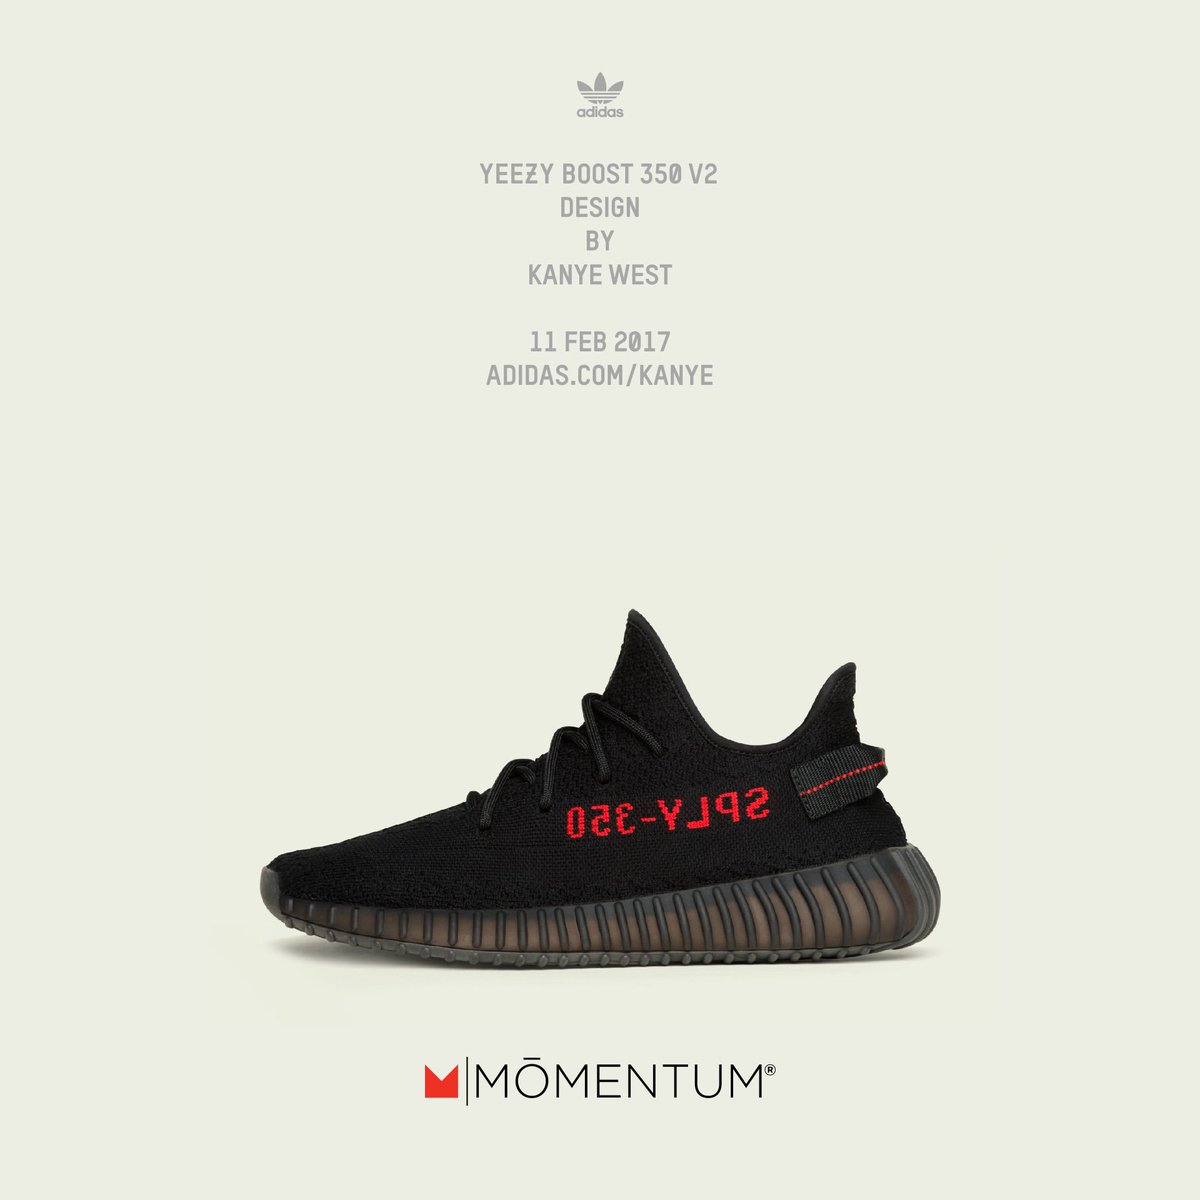 The Yeezy Boost V2 design by Kanye West